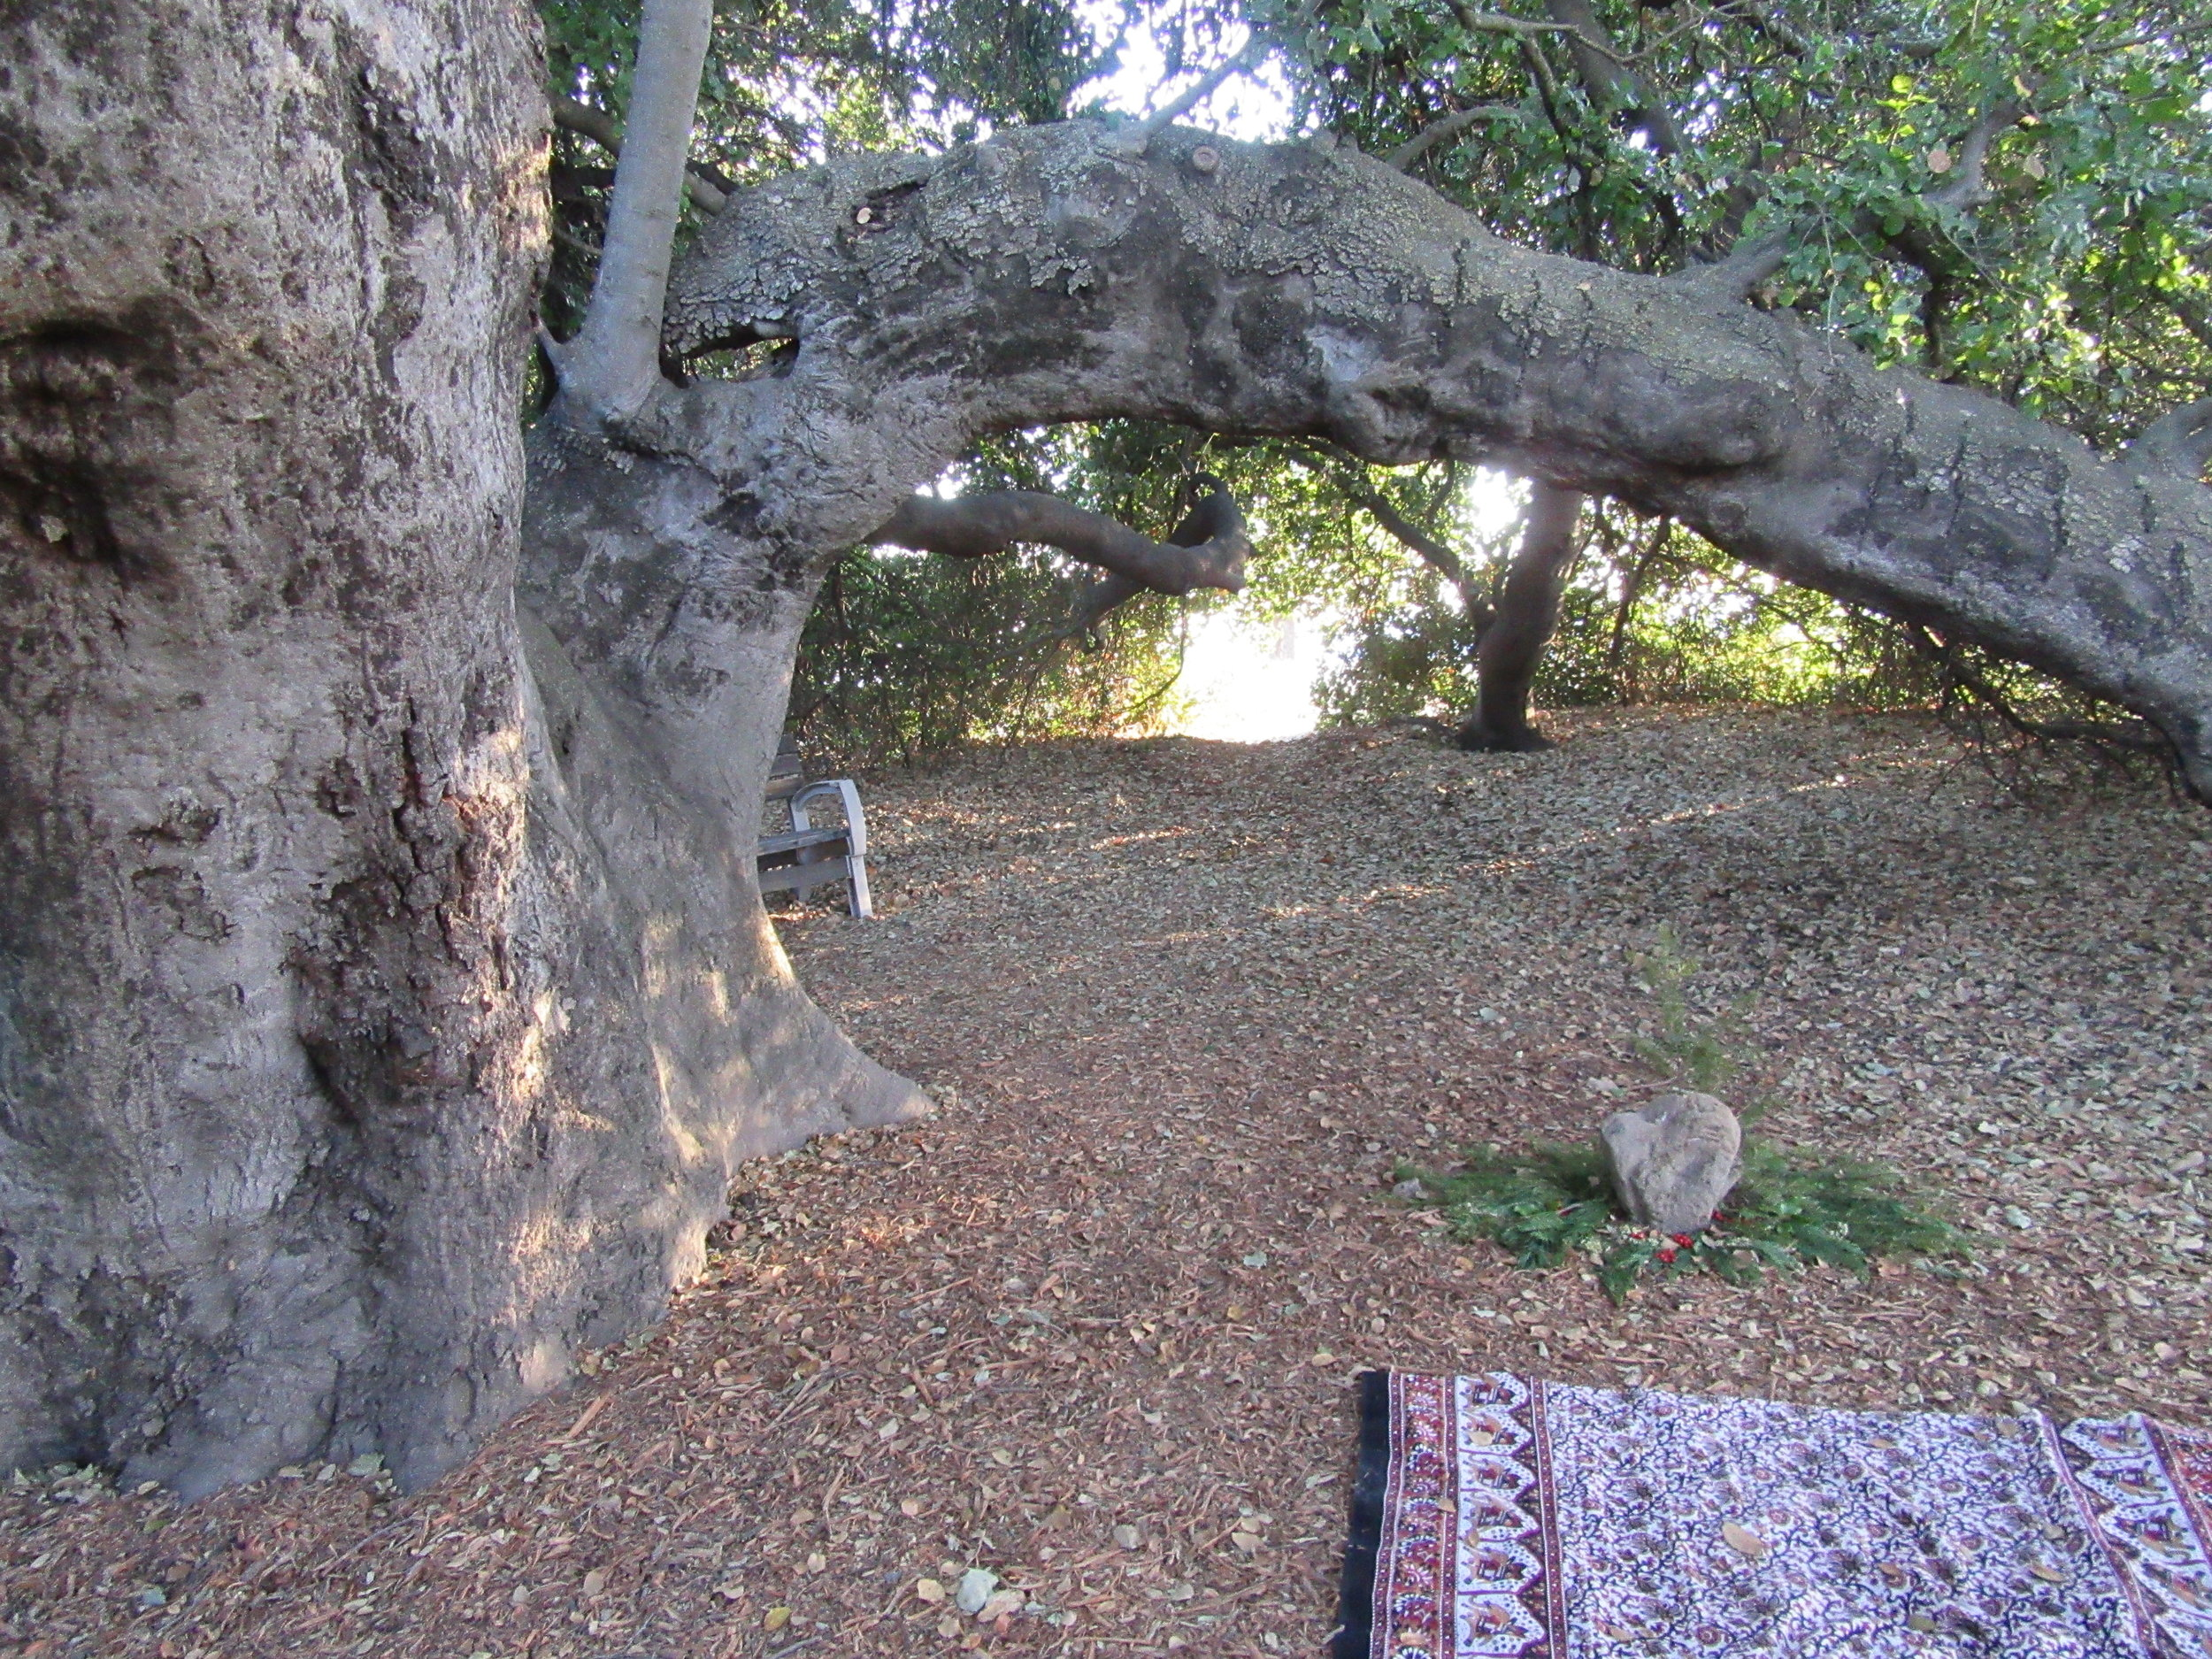 A BITTERSWEET MEMORY of being under Baba's Tree about a month before the December 2017 Thomas Fire at Meher Mount. The heart rock marks the spot where Avatar Meher Baba sat alone in 1956. (Photo: Sam Ervin, November 2017)